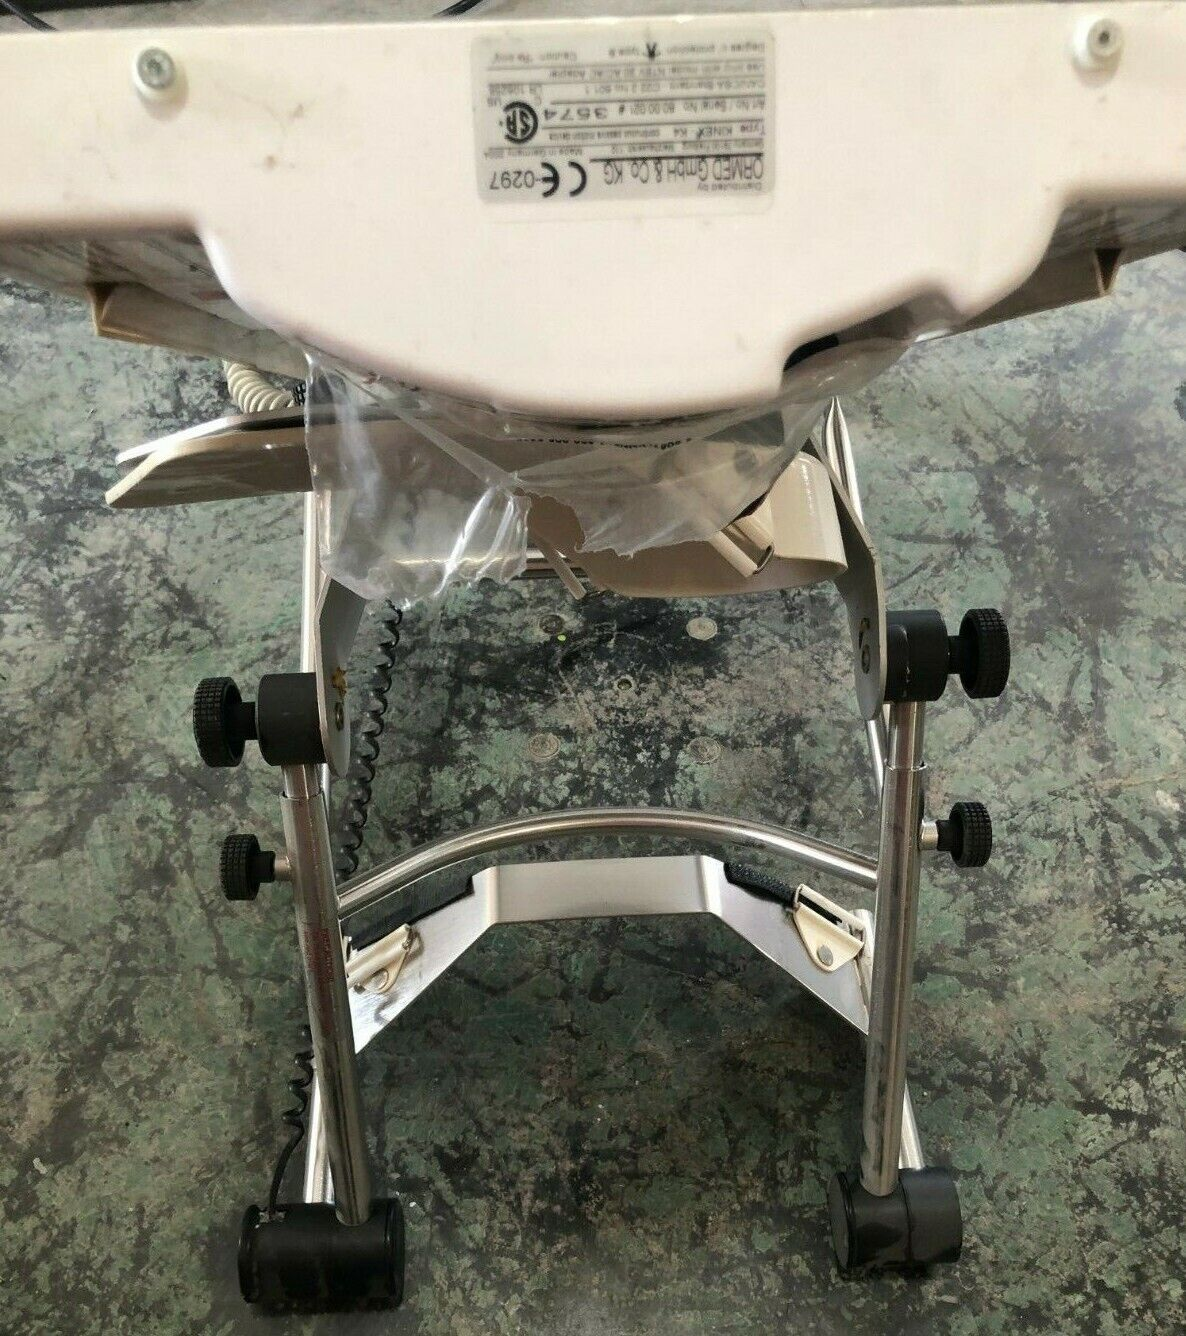 FOR PARTS OR NOT WORKING KINEX REHABILITATION MACHINE CPM PHYSICAL THERAPY MEDICAL HOSPITAL HOME USE